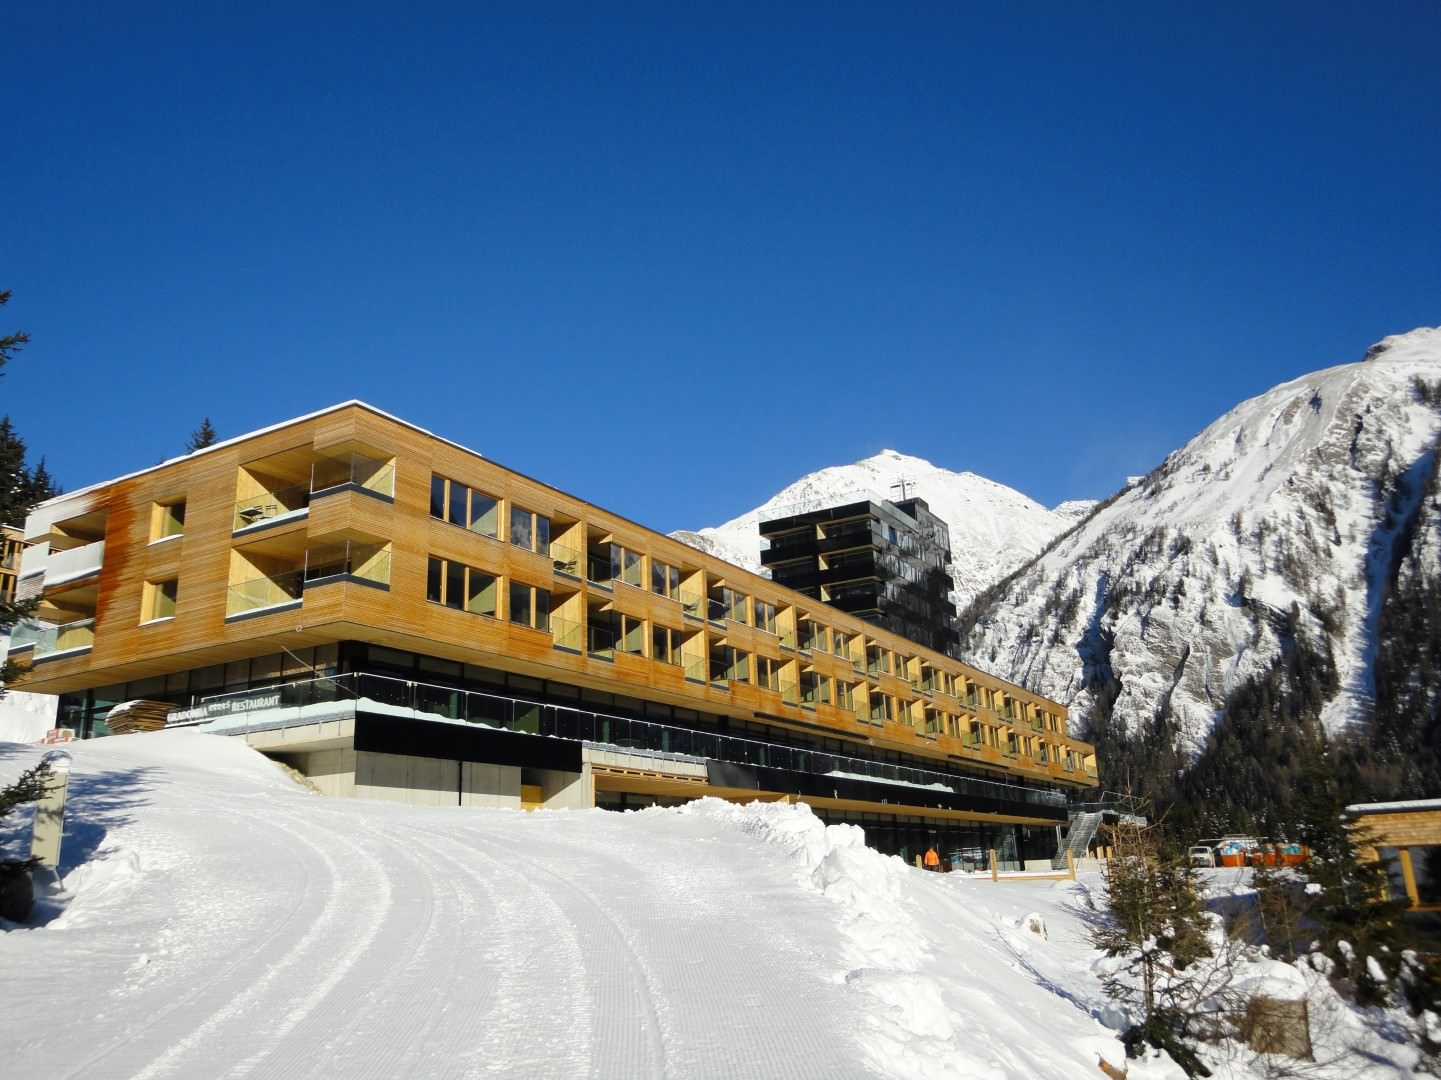 Hotel Gradonna Mountain Resort (Kals am Grossglockner)